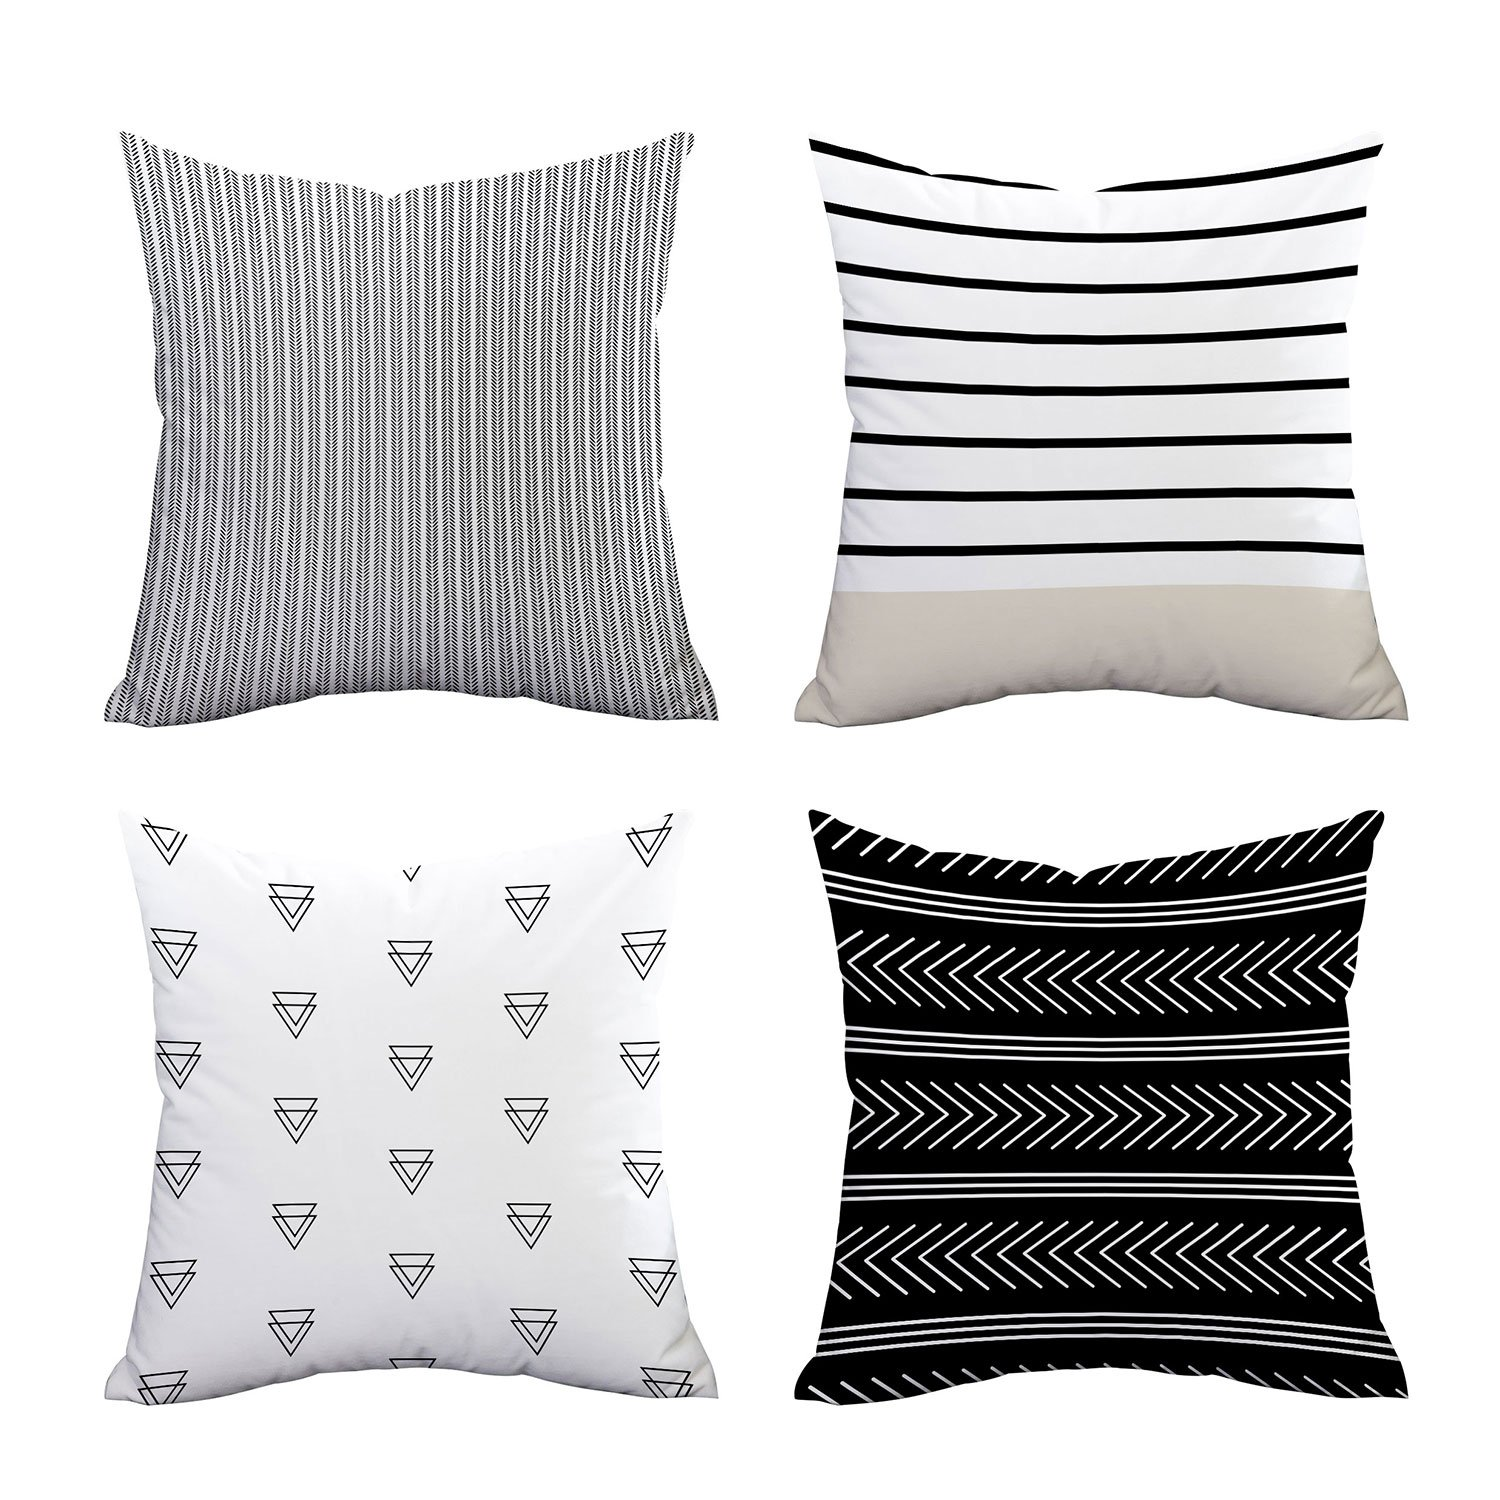 Amazon Com Set Of 4 Pillow Covers Stripe Pattern Throw Pillow Case Daily Decorations Sofa Throw Pillow Case Cushion Covers Zippered Pillowcase